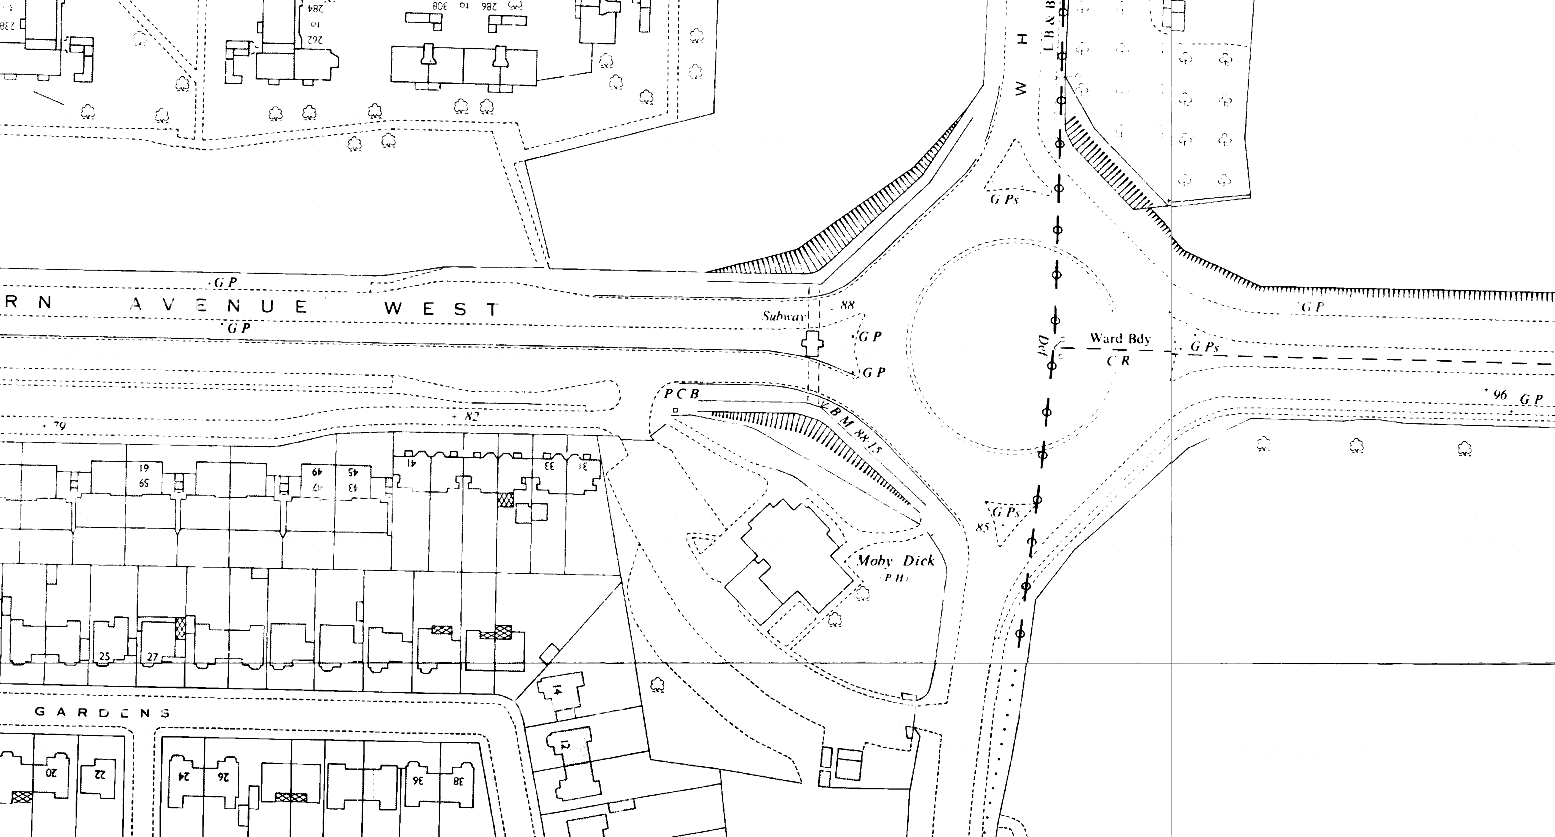 K19--Moby Dick Roundabout, Chadwell Heath Box--1963 OS Map Extract 1-1250.png